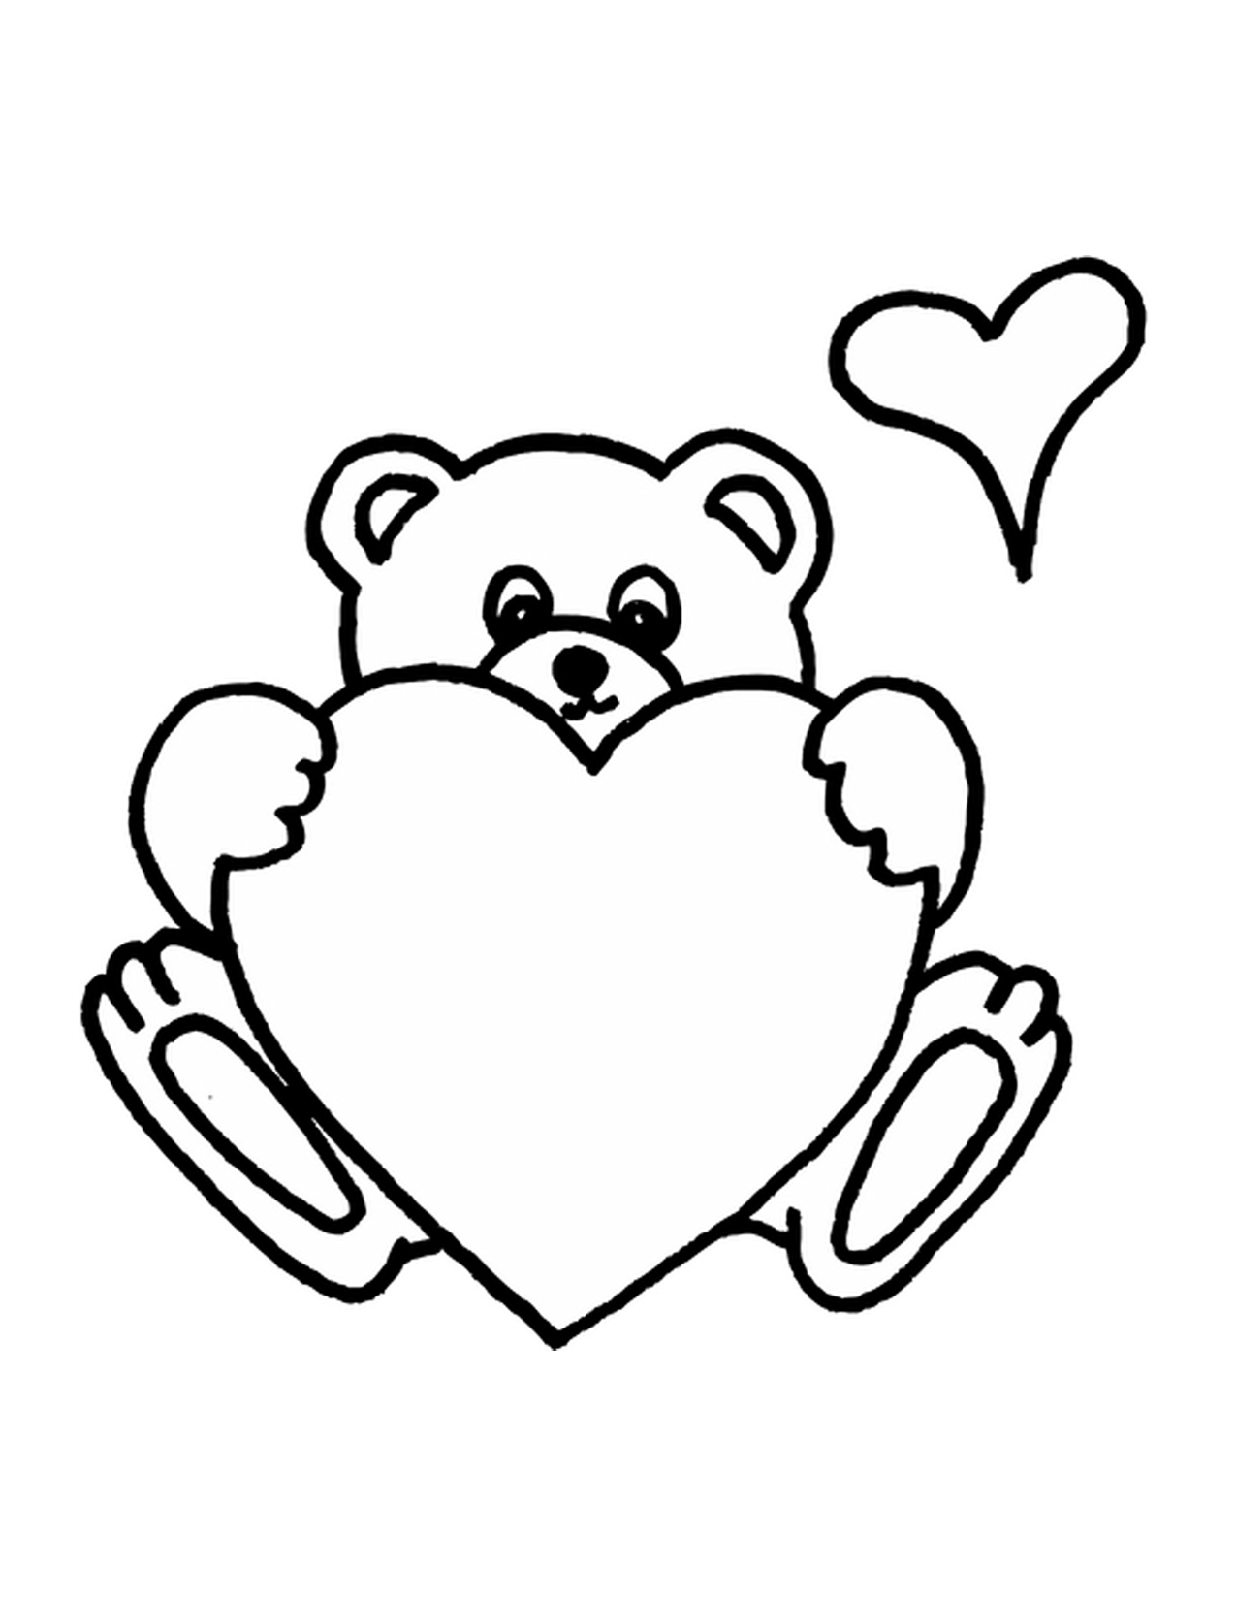 Teddy Bear Coloring Pages to Print Heart coloring pages